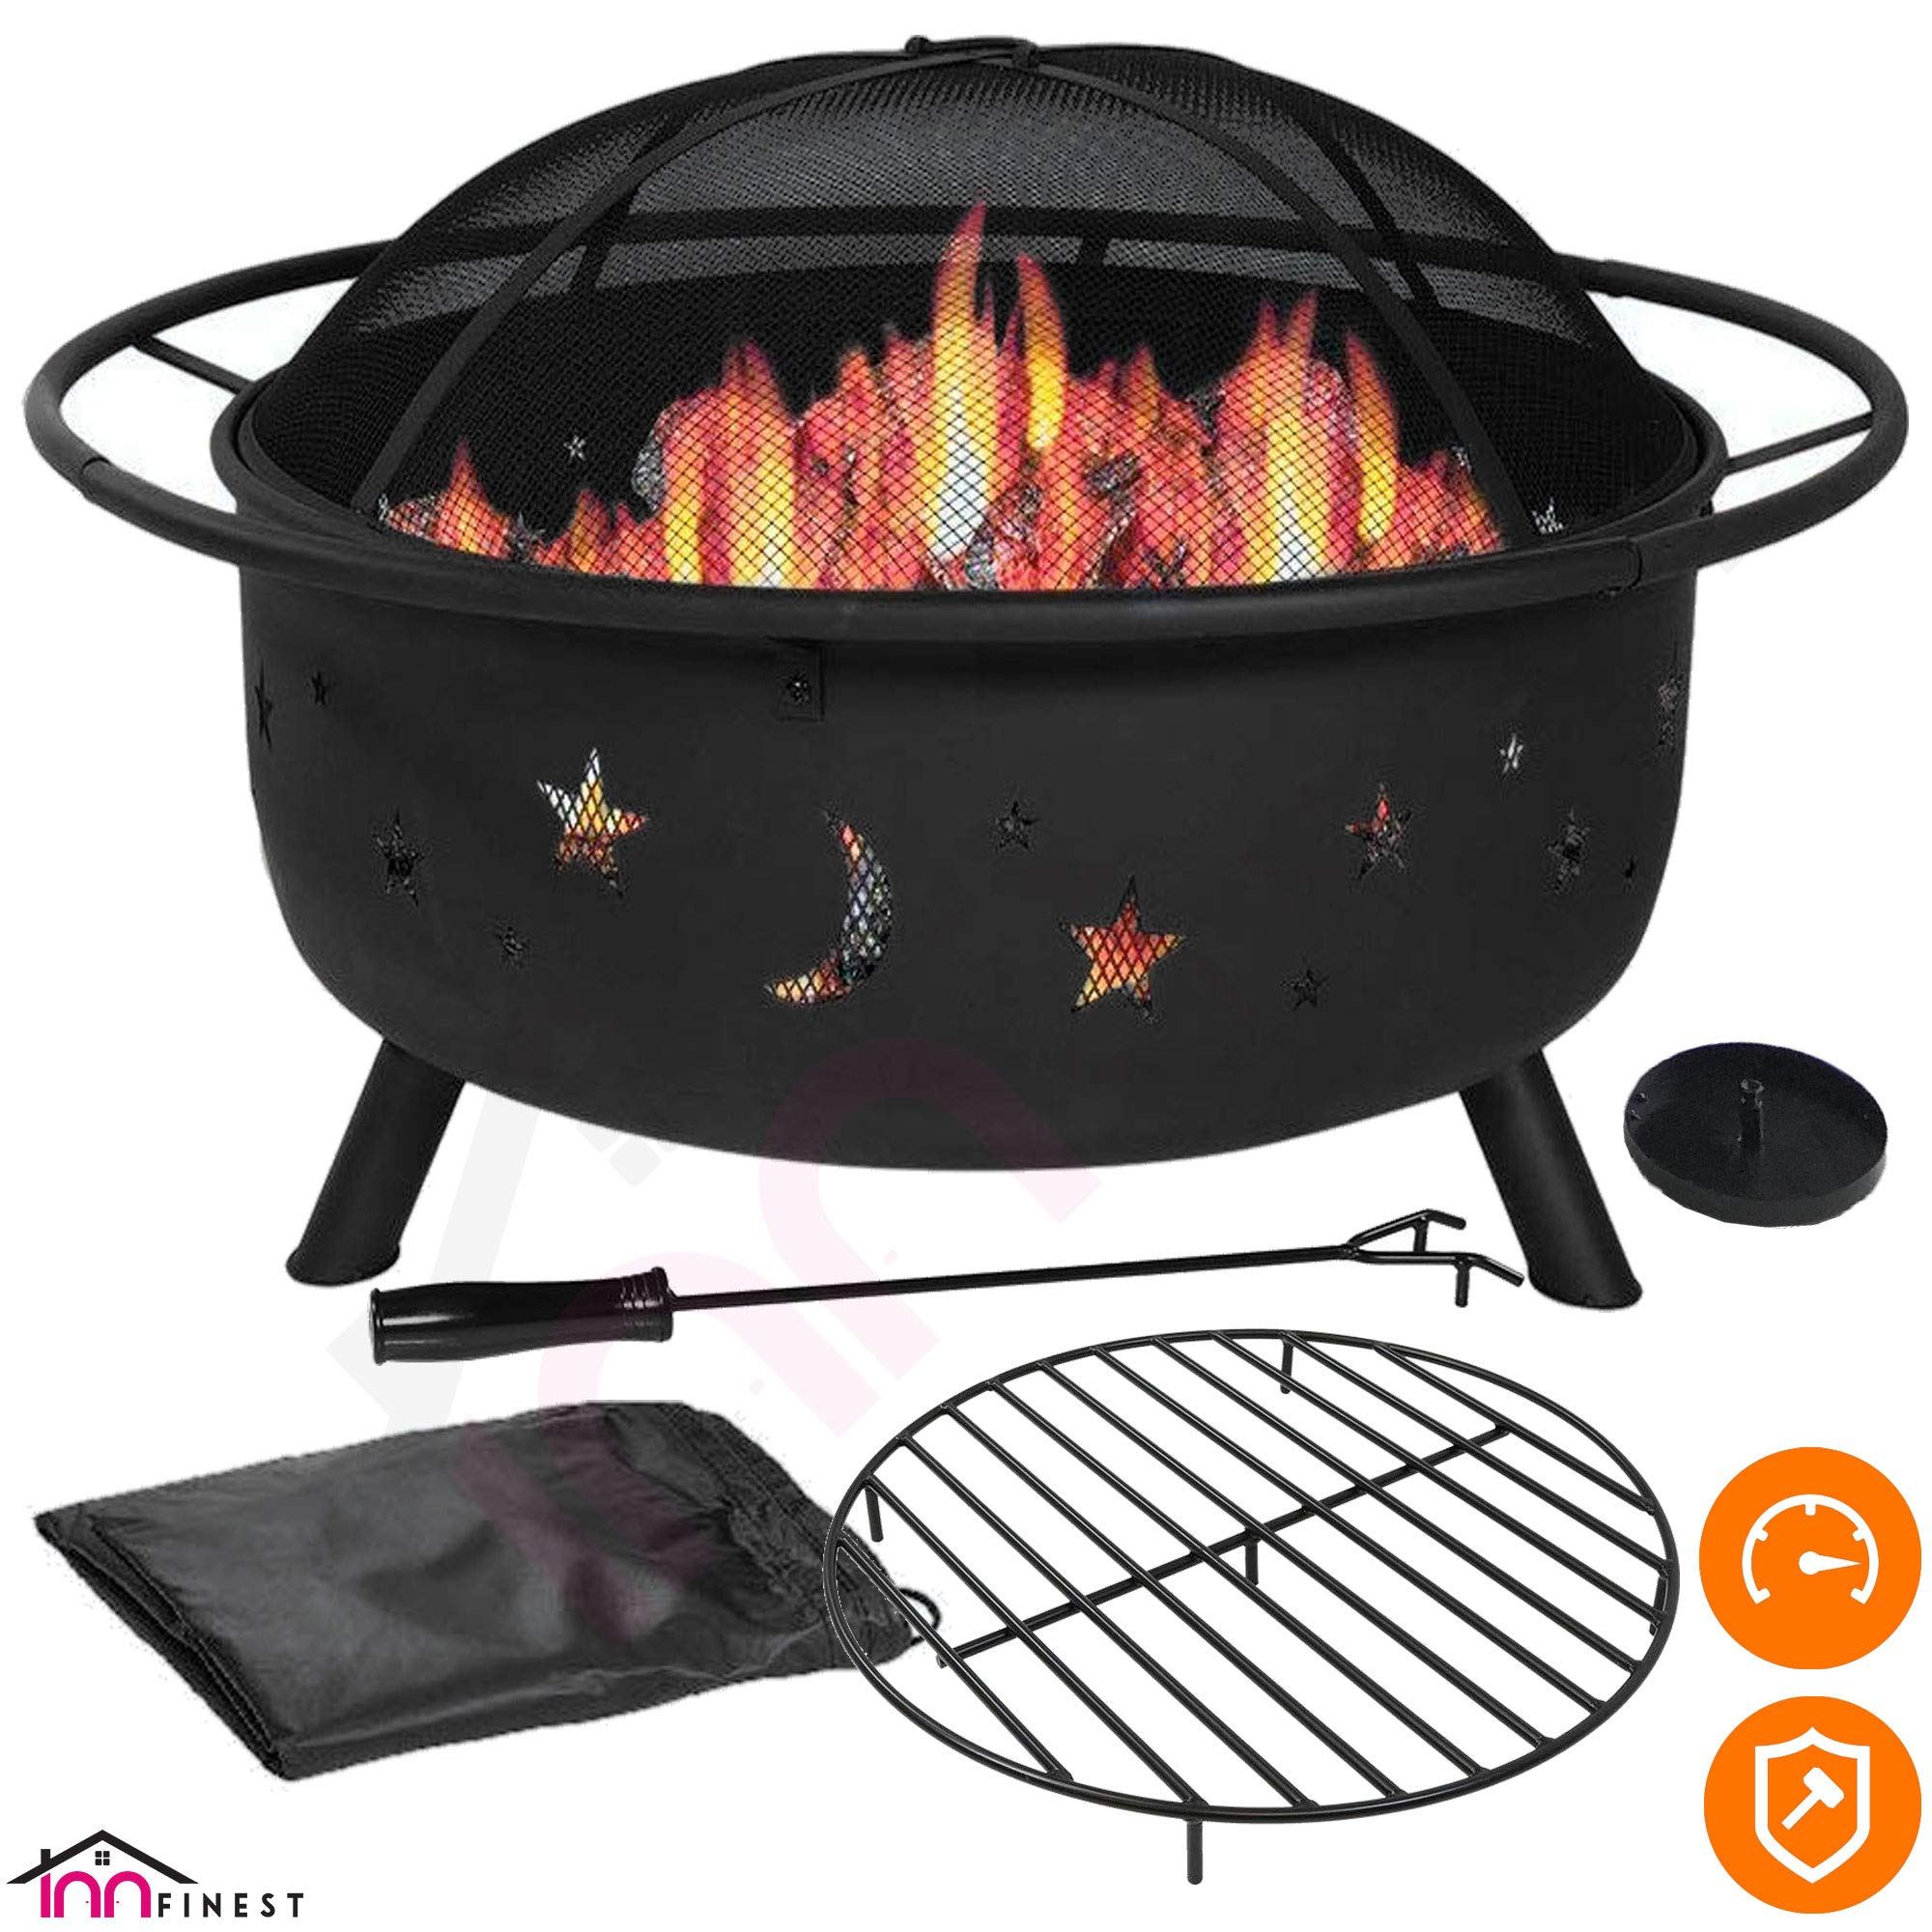 Outdoor Fire Pit Set - Large Bonfire Wood Burning Firepit Bowl - Spark Screen Cover, Fireplace Poker, BBQ Grill Metal Grate, Waterproof Rain Cover - for Outdoor Backyard Terrace Patio (31 Inch) by InnFinest